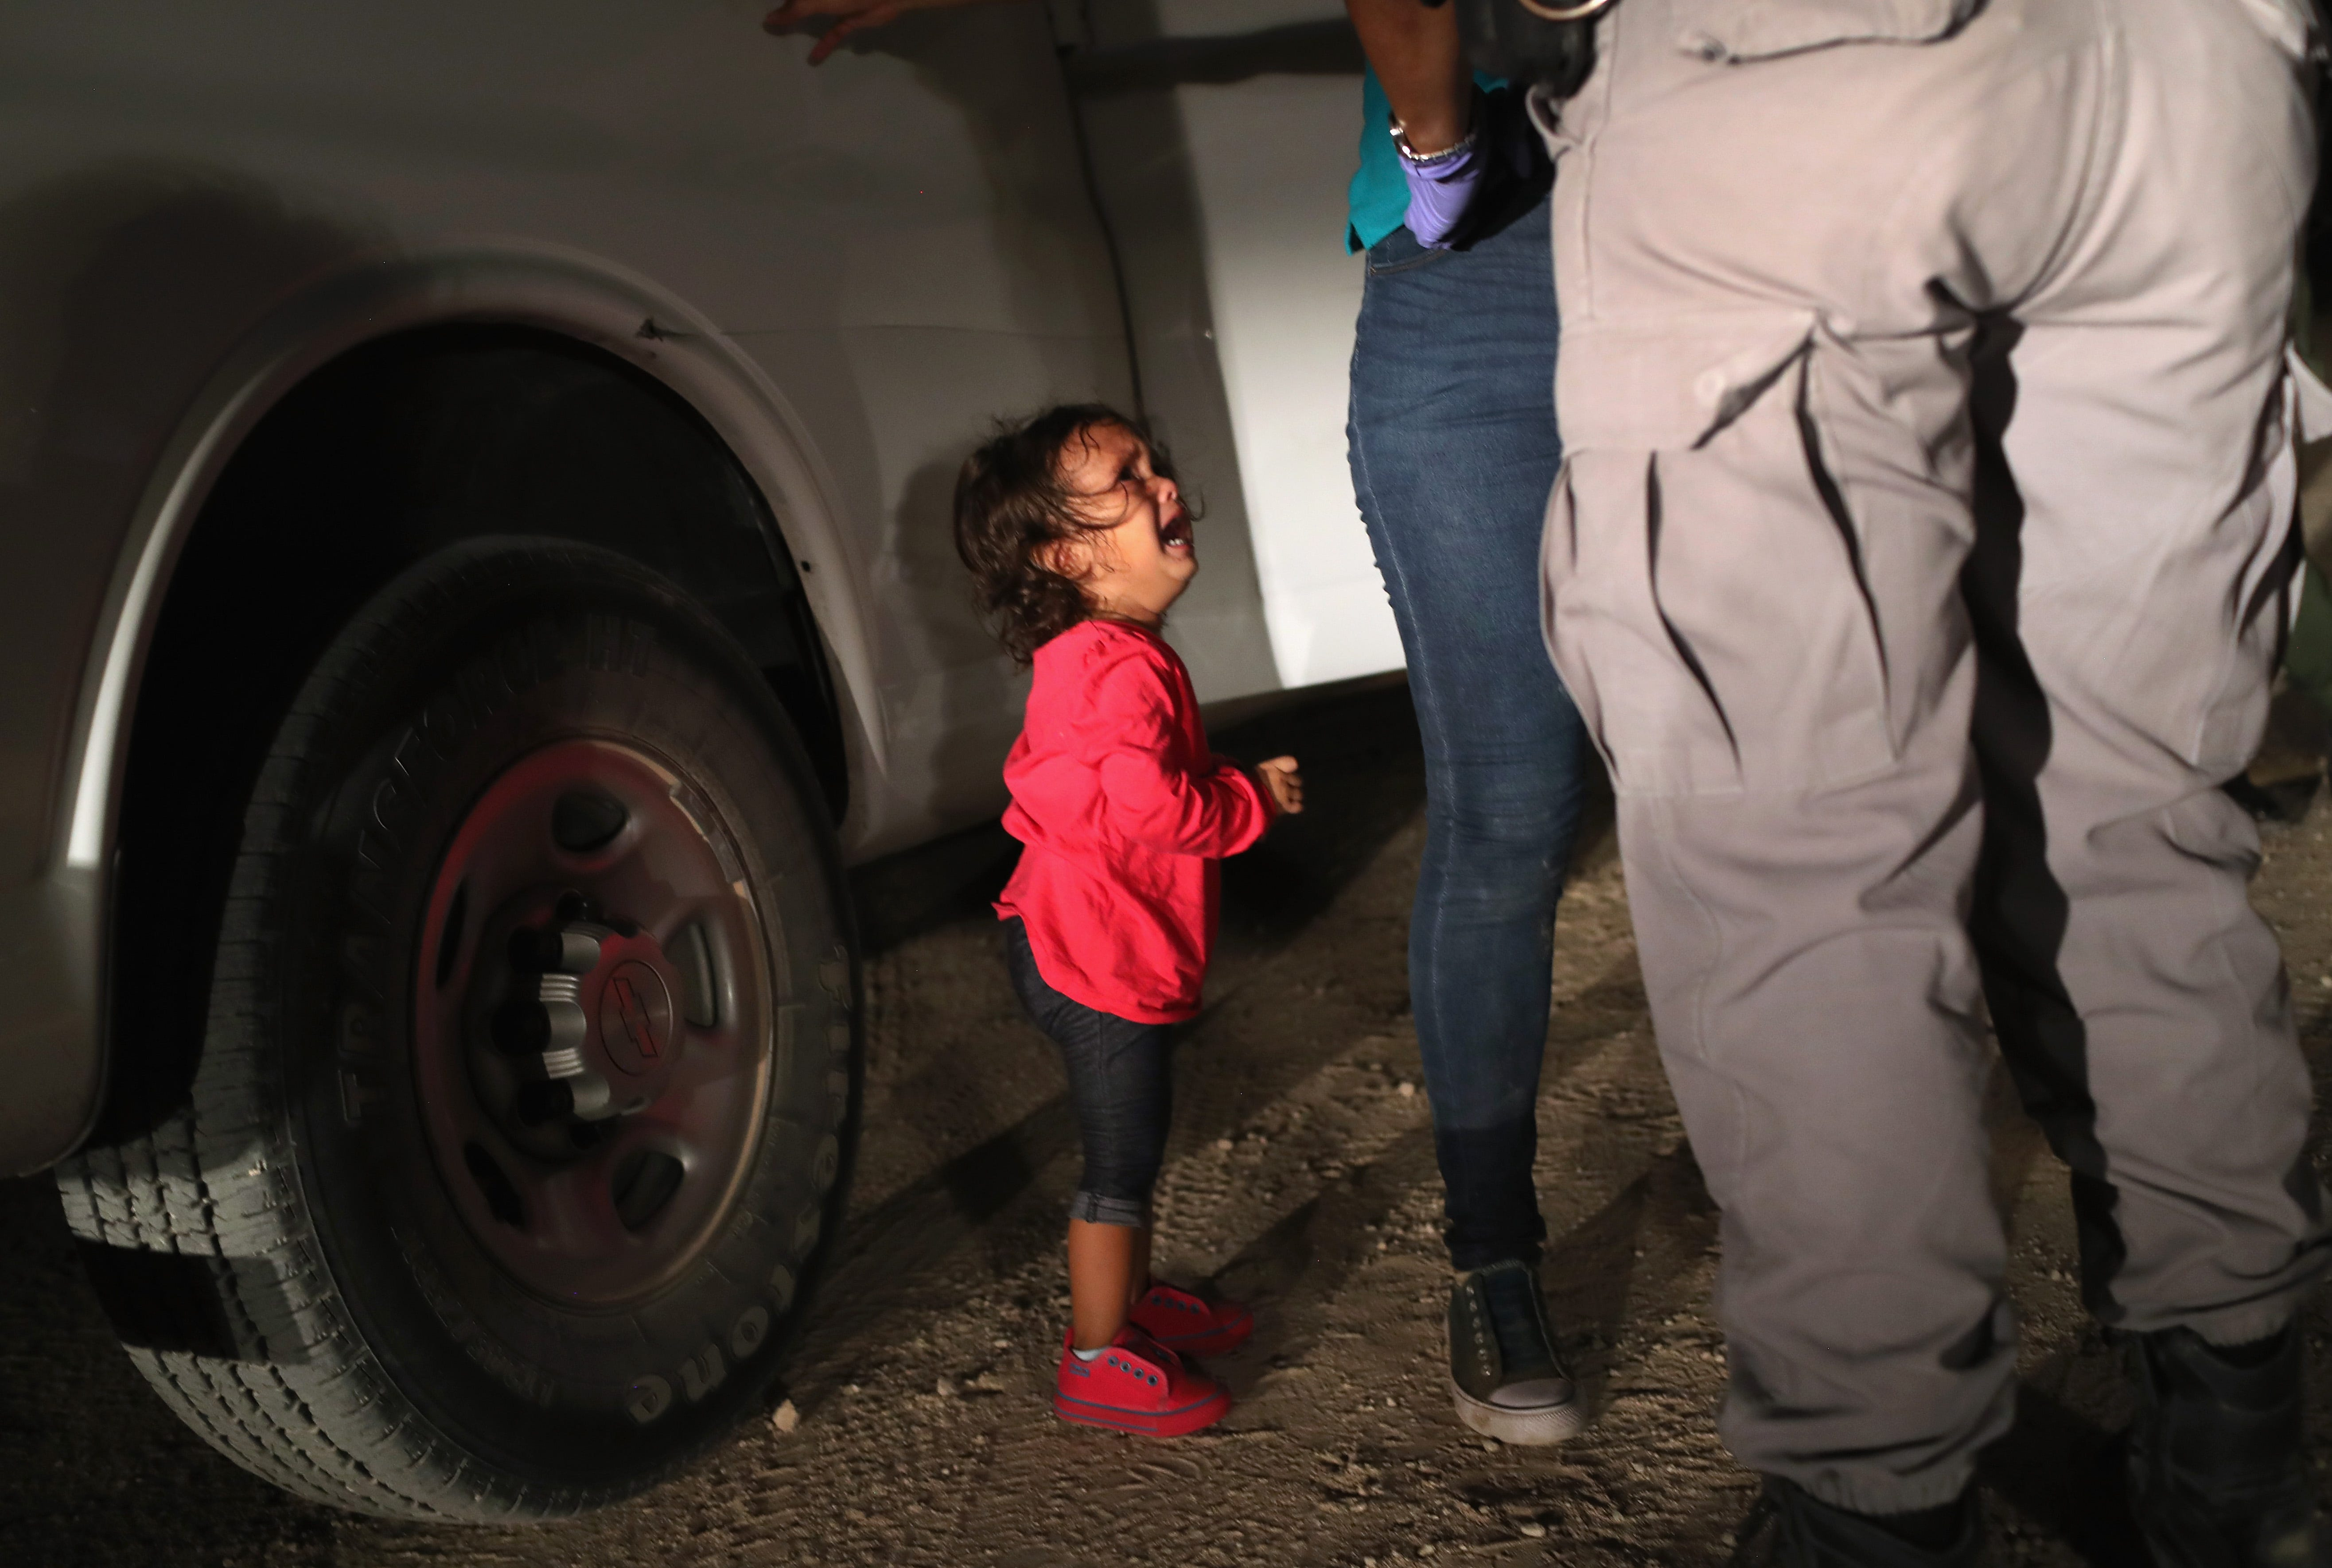 Facebook fundraiser to help immigrant children tops $20 million with global donations